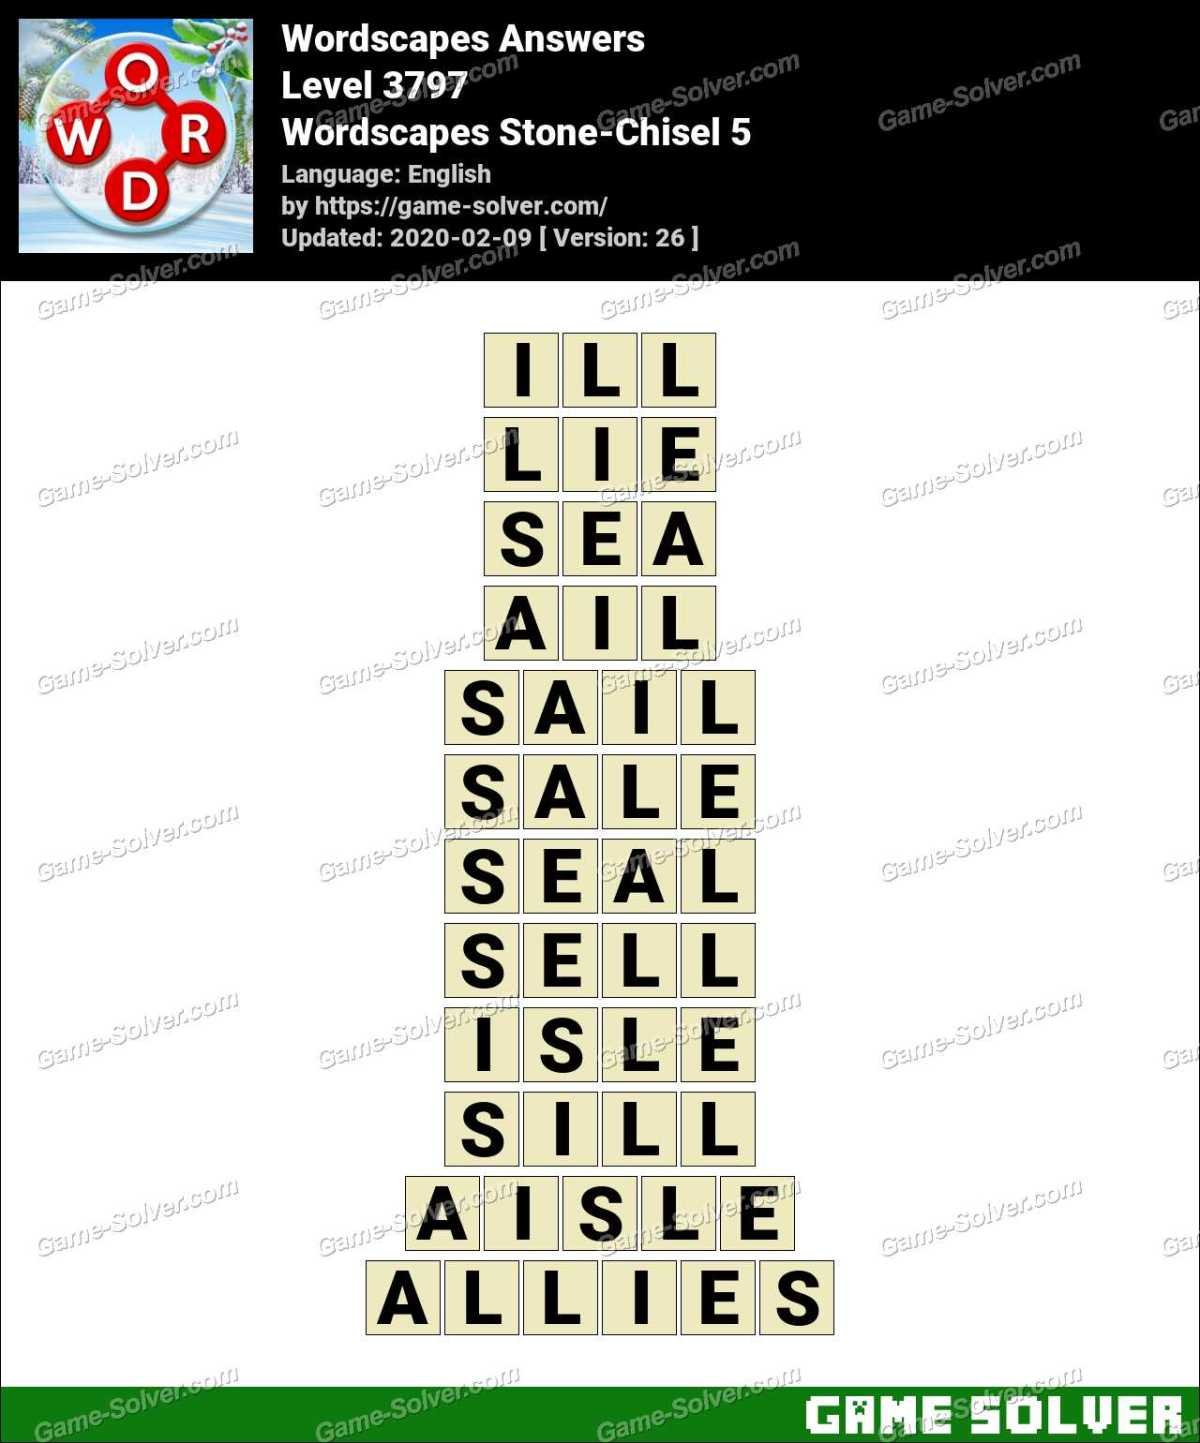 Wordscapes Stone-Chisel 5 Answers